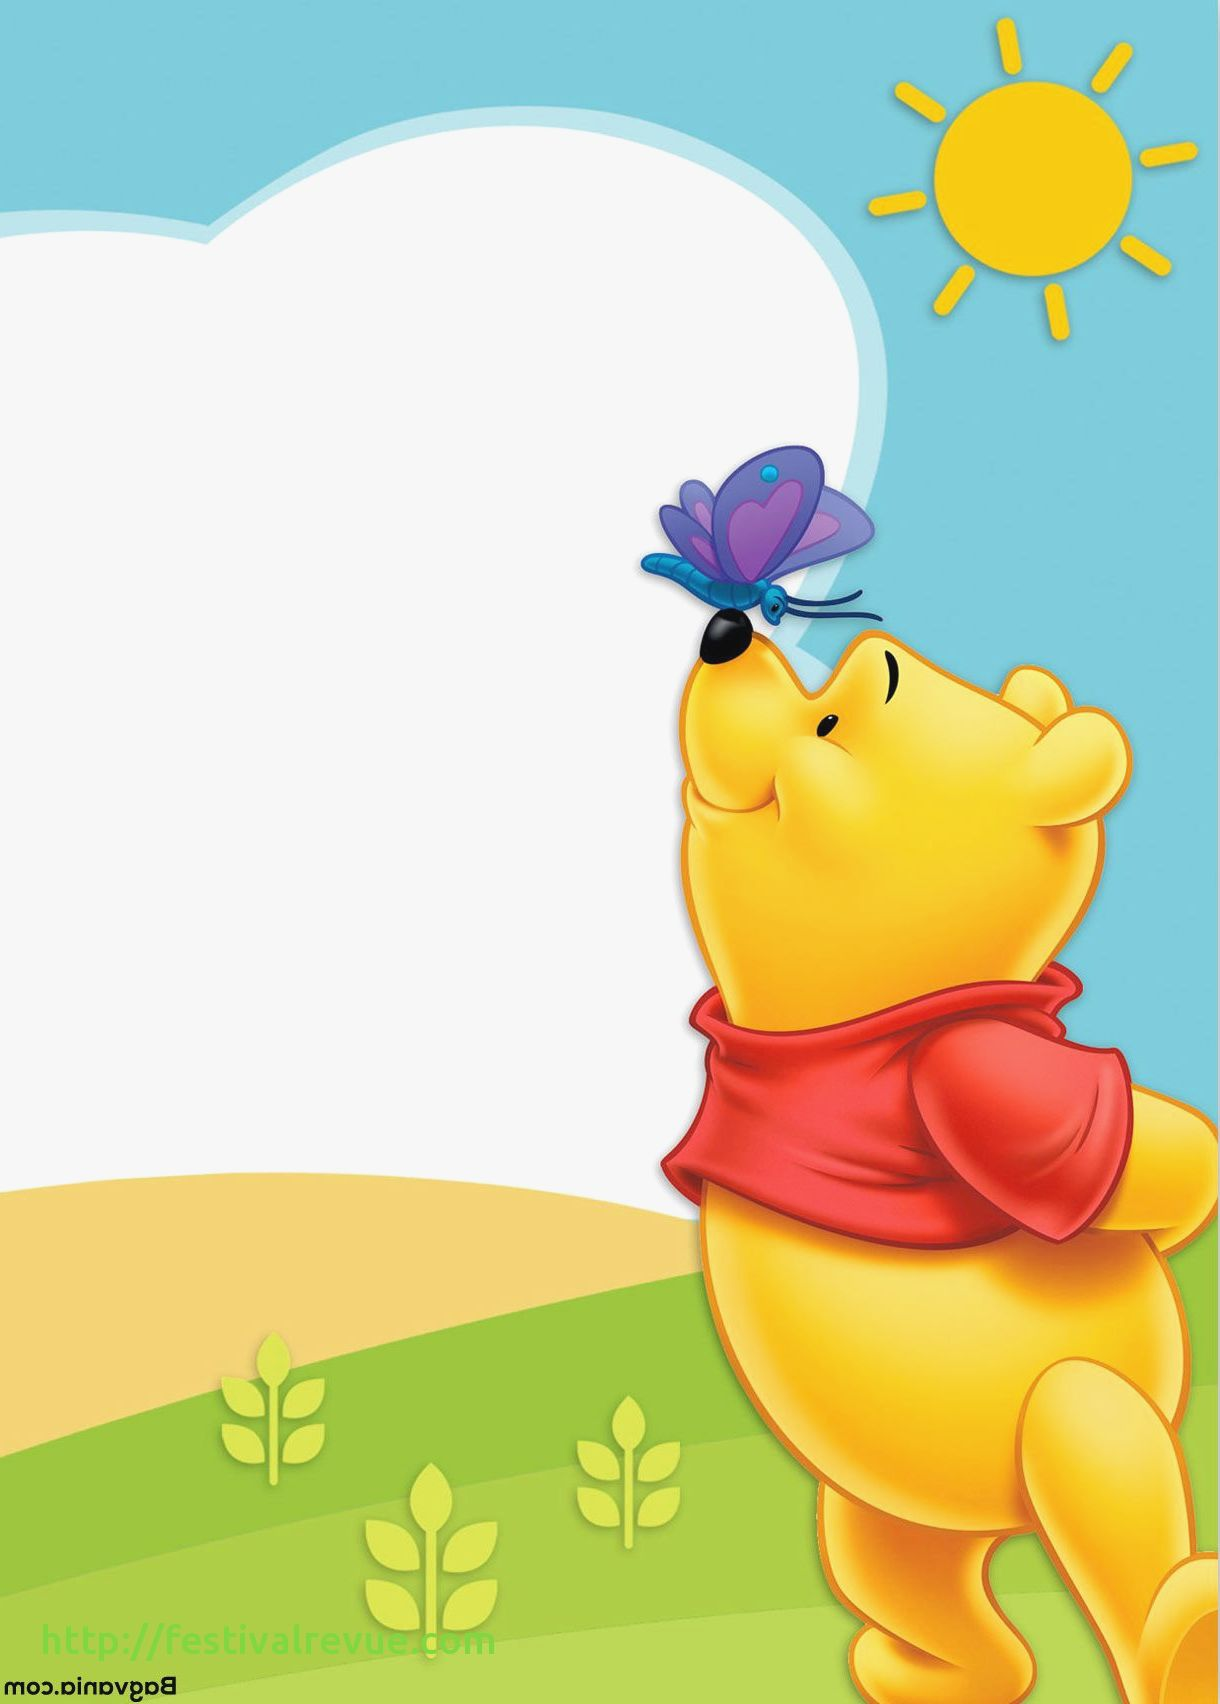 Winnie The Pooh Wallpaper HD Background Download Mobile iPhone s